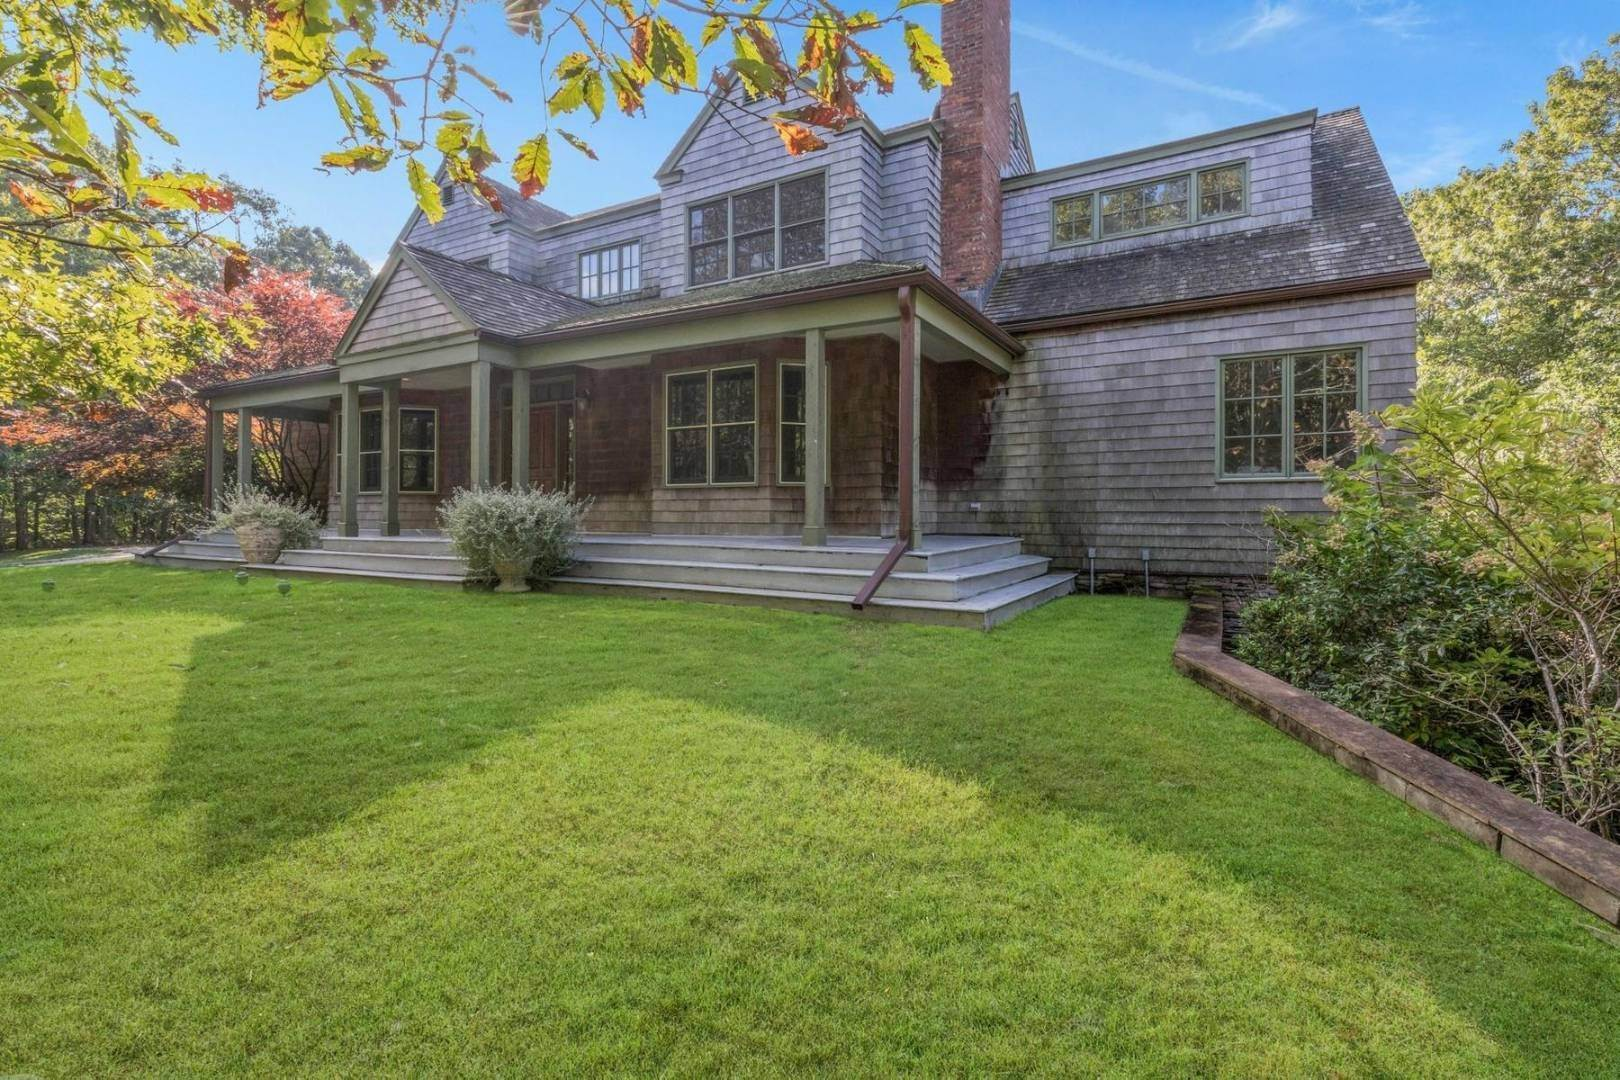 Single Family Home at Bridgehampton Farmhouse Bridgehampton, NY 11932